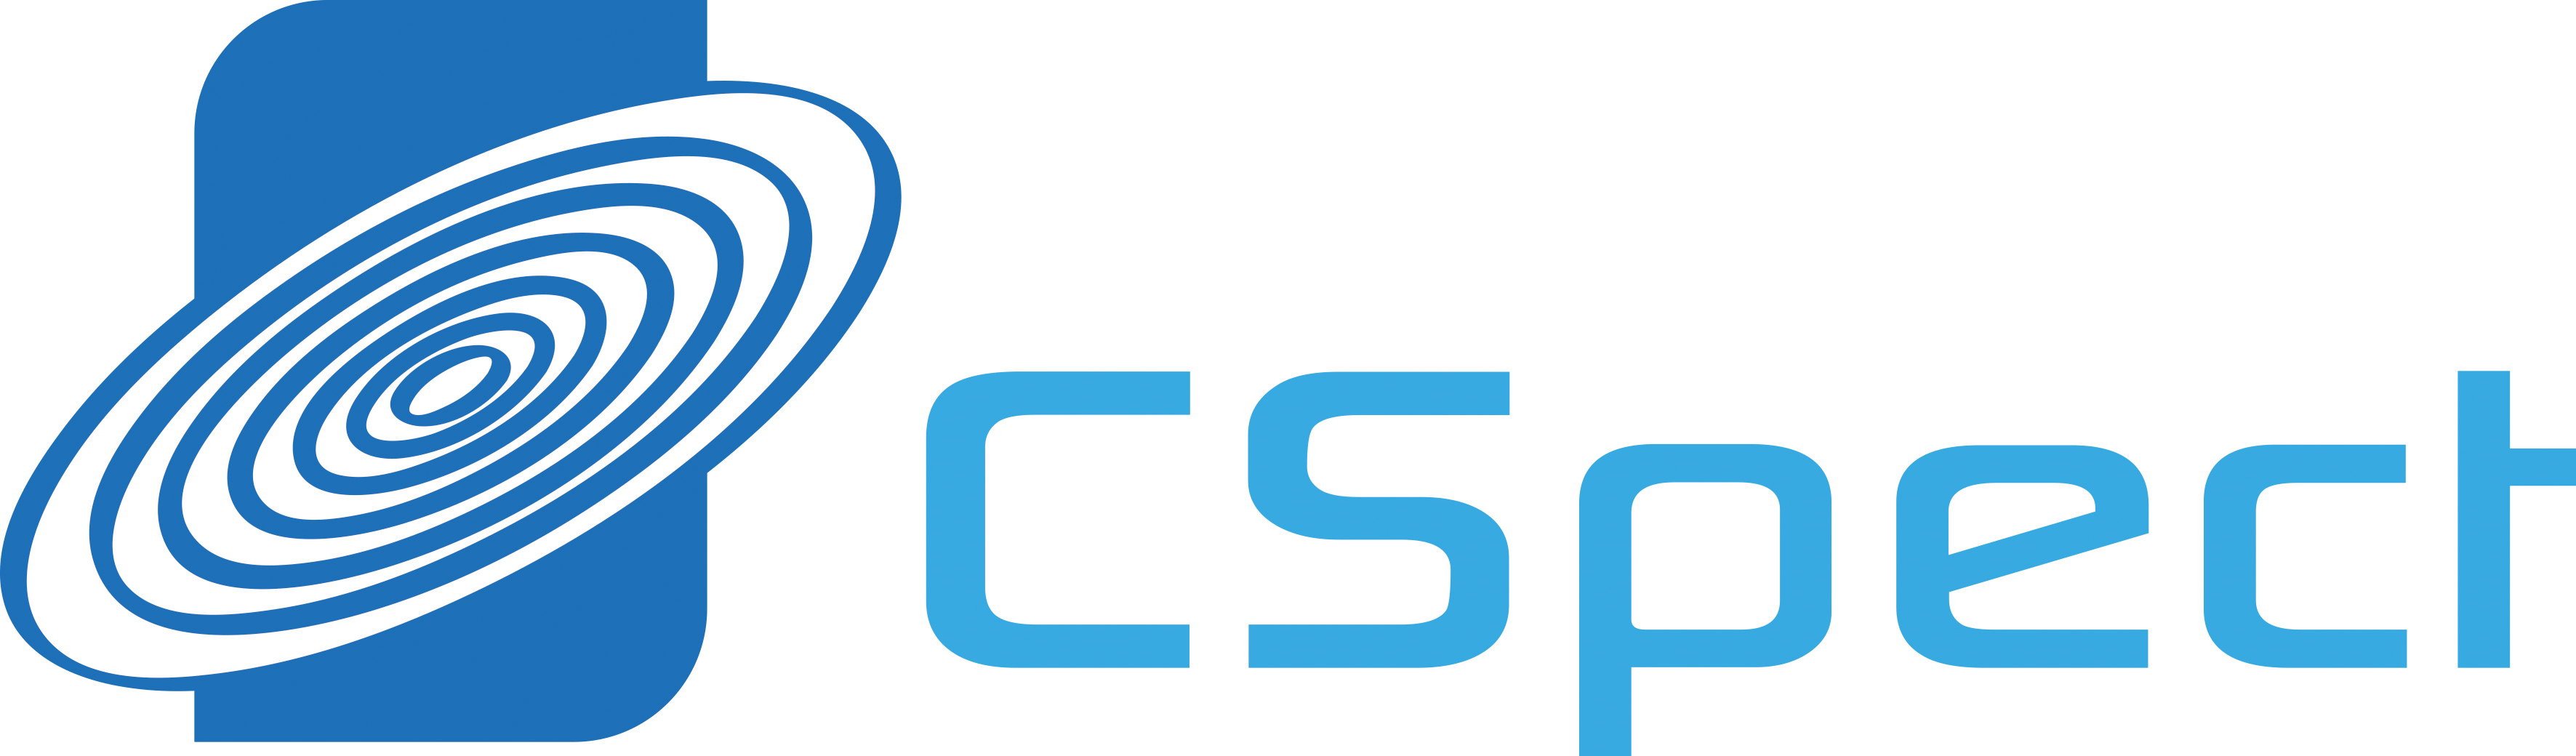 Logo CSpect Condition Monitoring of your assets above and below water